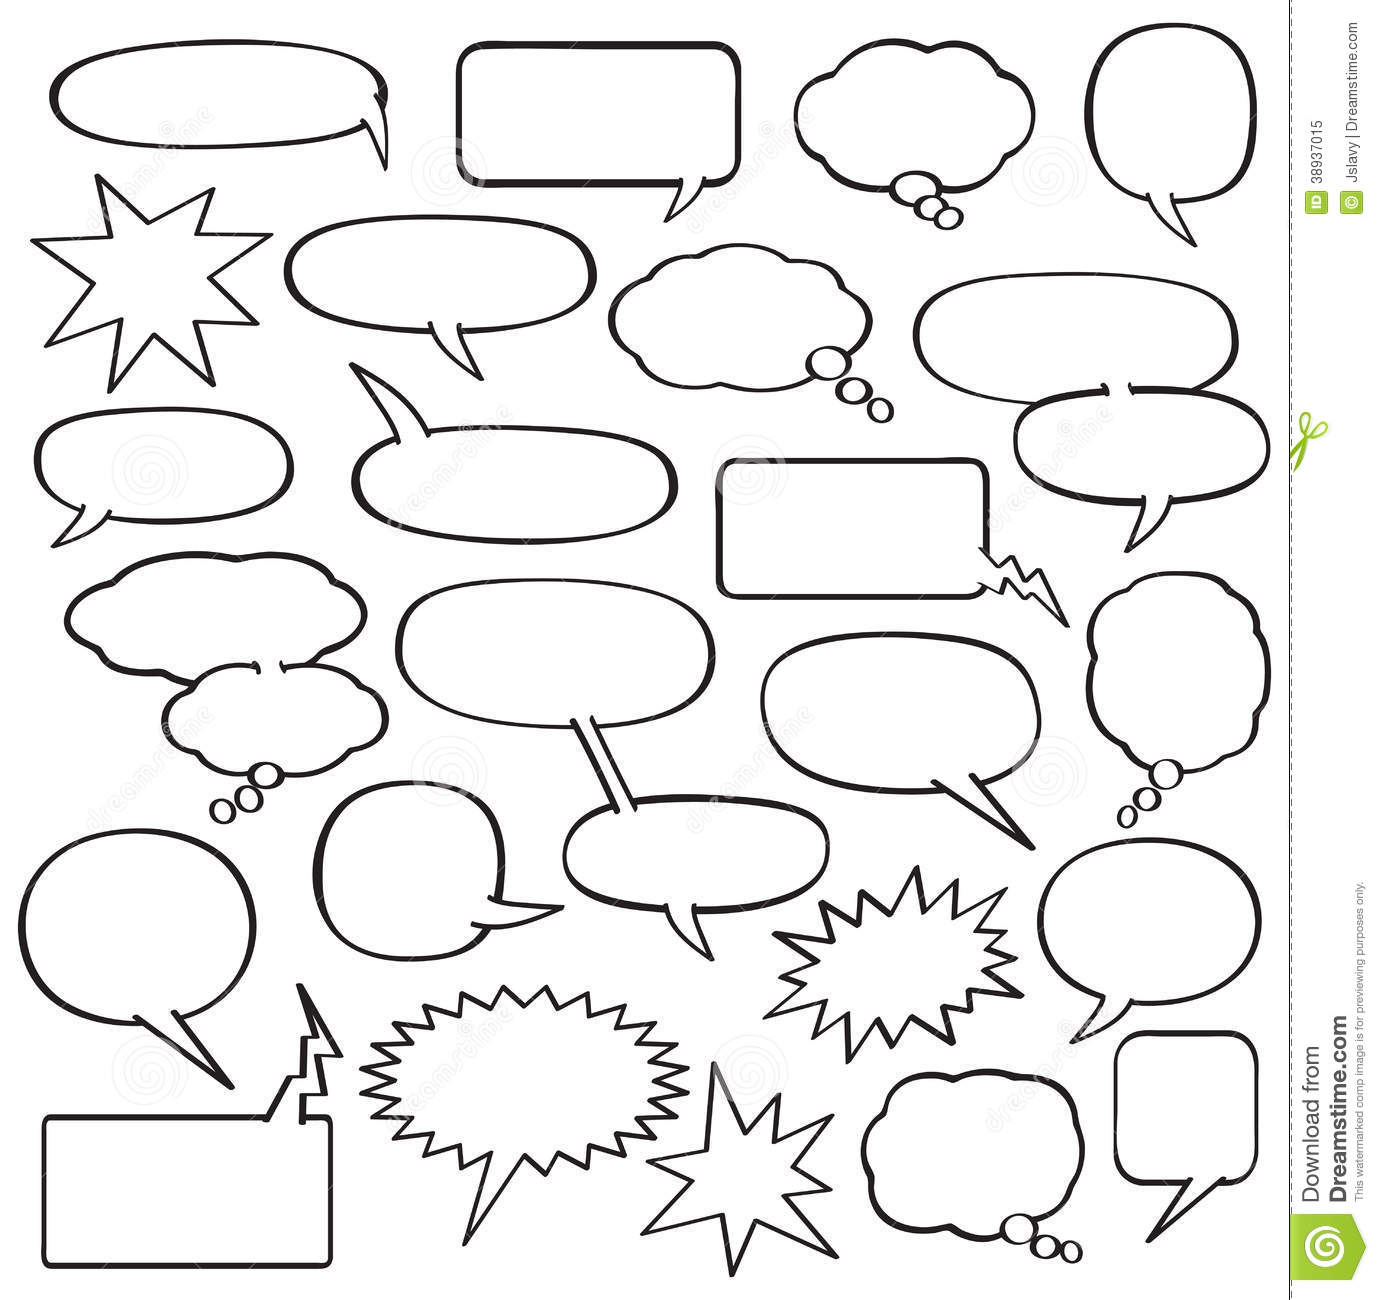 Cartoon Speech Bubbles Stock Vector Illustration Of Inked